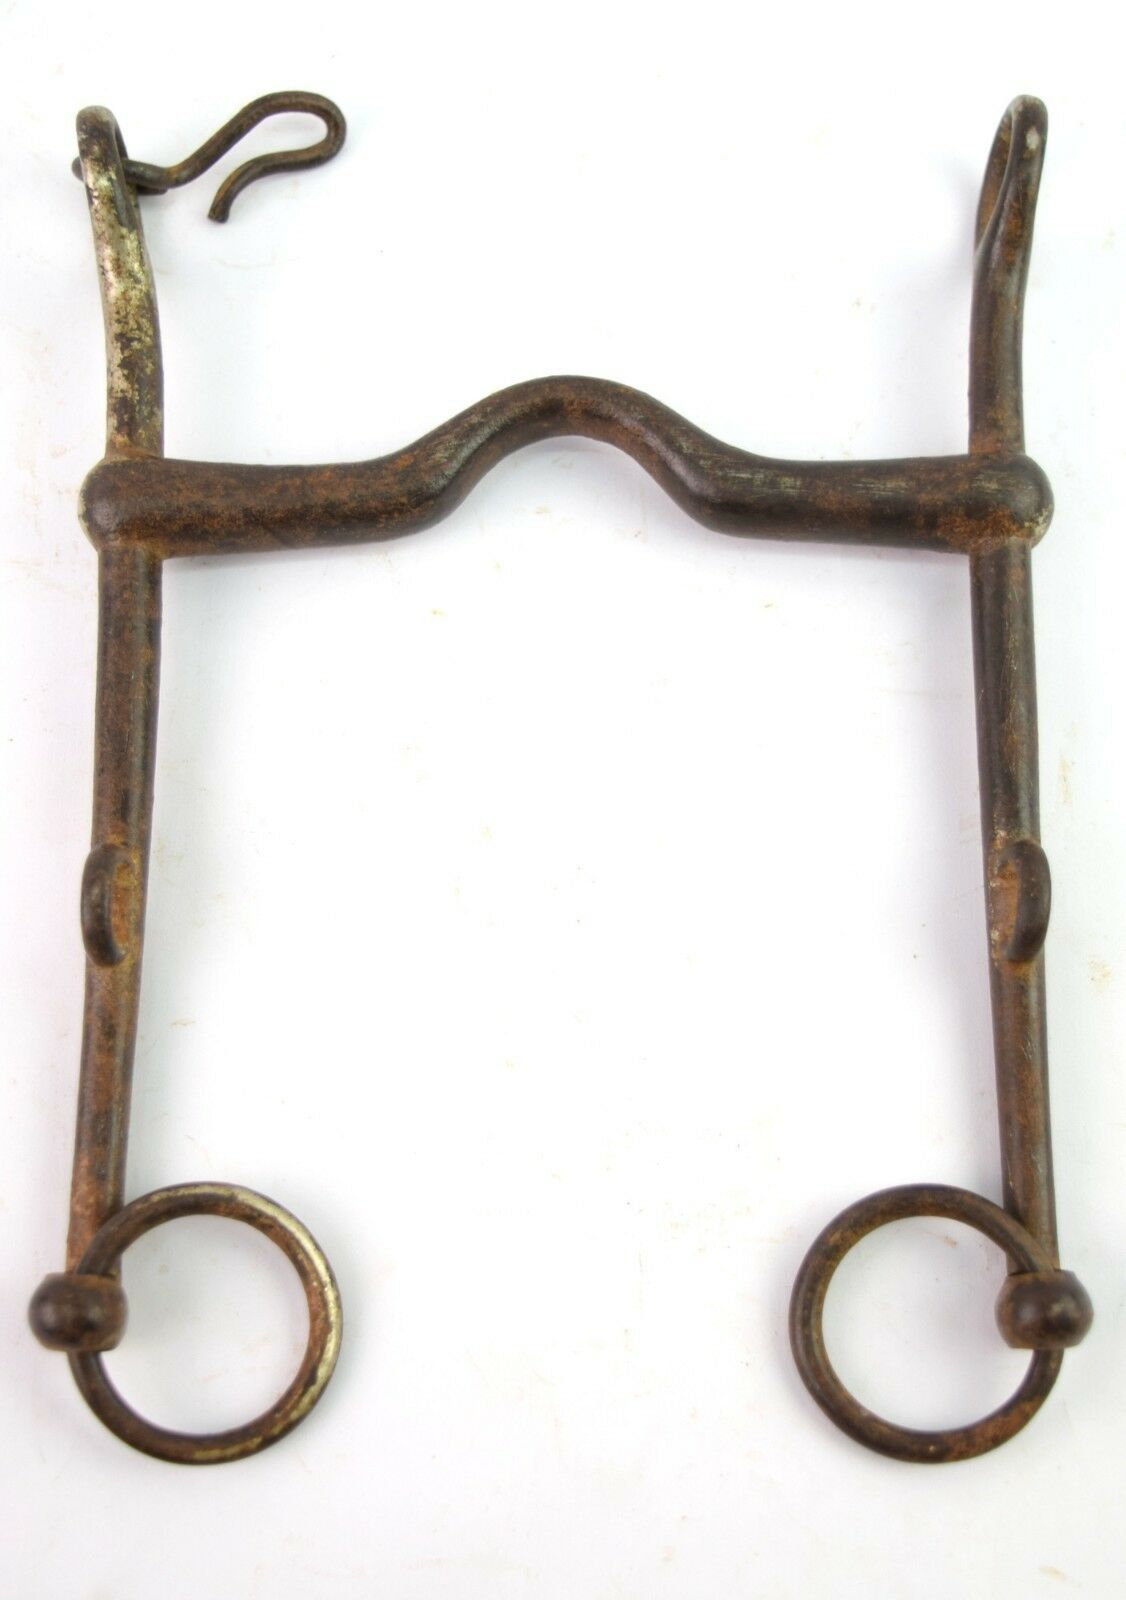 Indian Art & Collectibles Horse Accessory Iron Bridle Farm Decor. G42-151 US